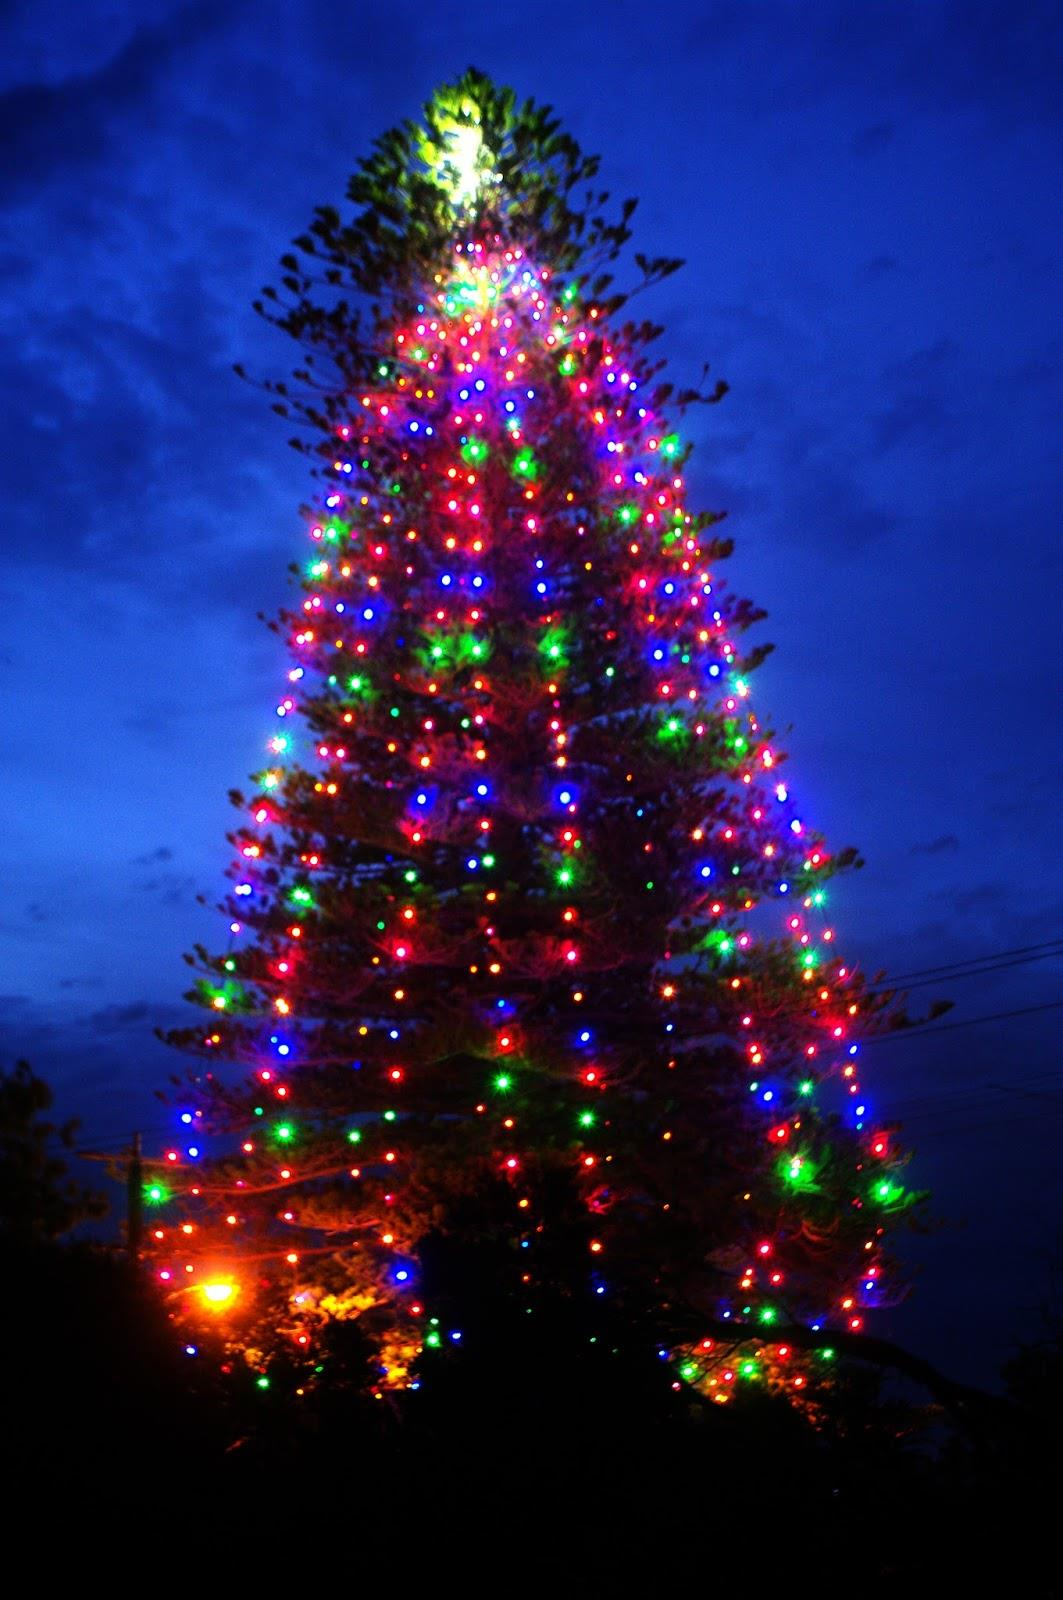 Christmas Tree Lights Australia Lighting Martin Place 25 Light Sequencer Using Xmas Lamps Holiday Vintage In At Night Stock Photo Image Of